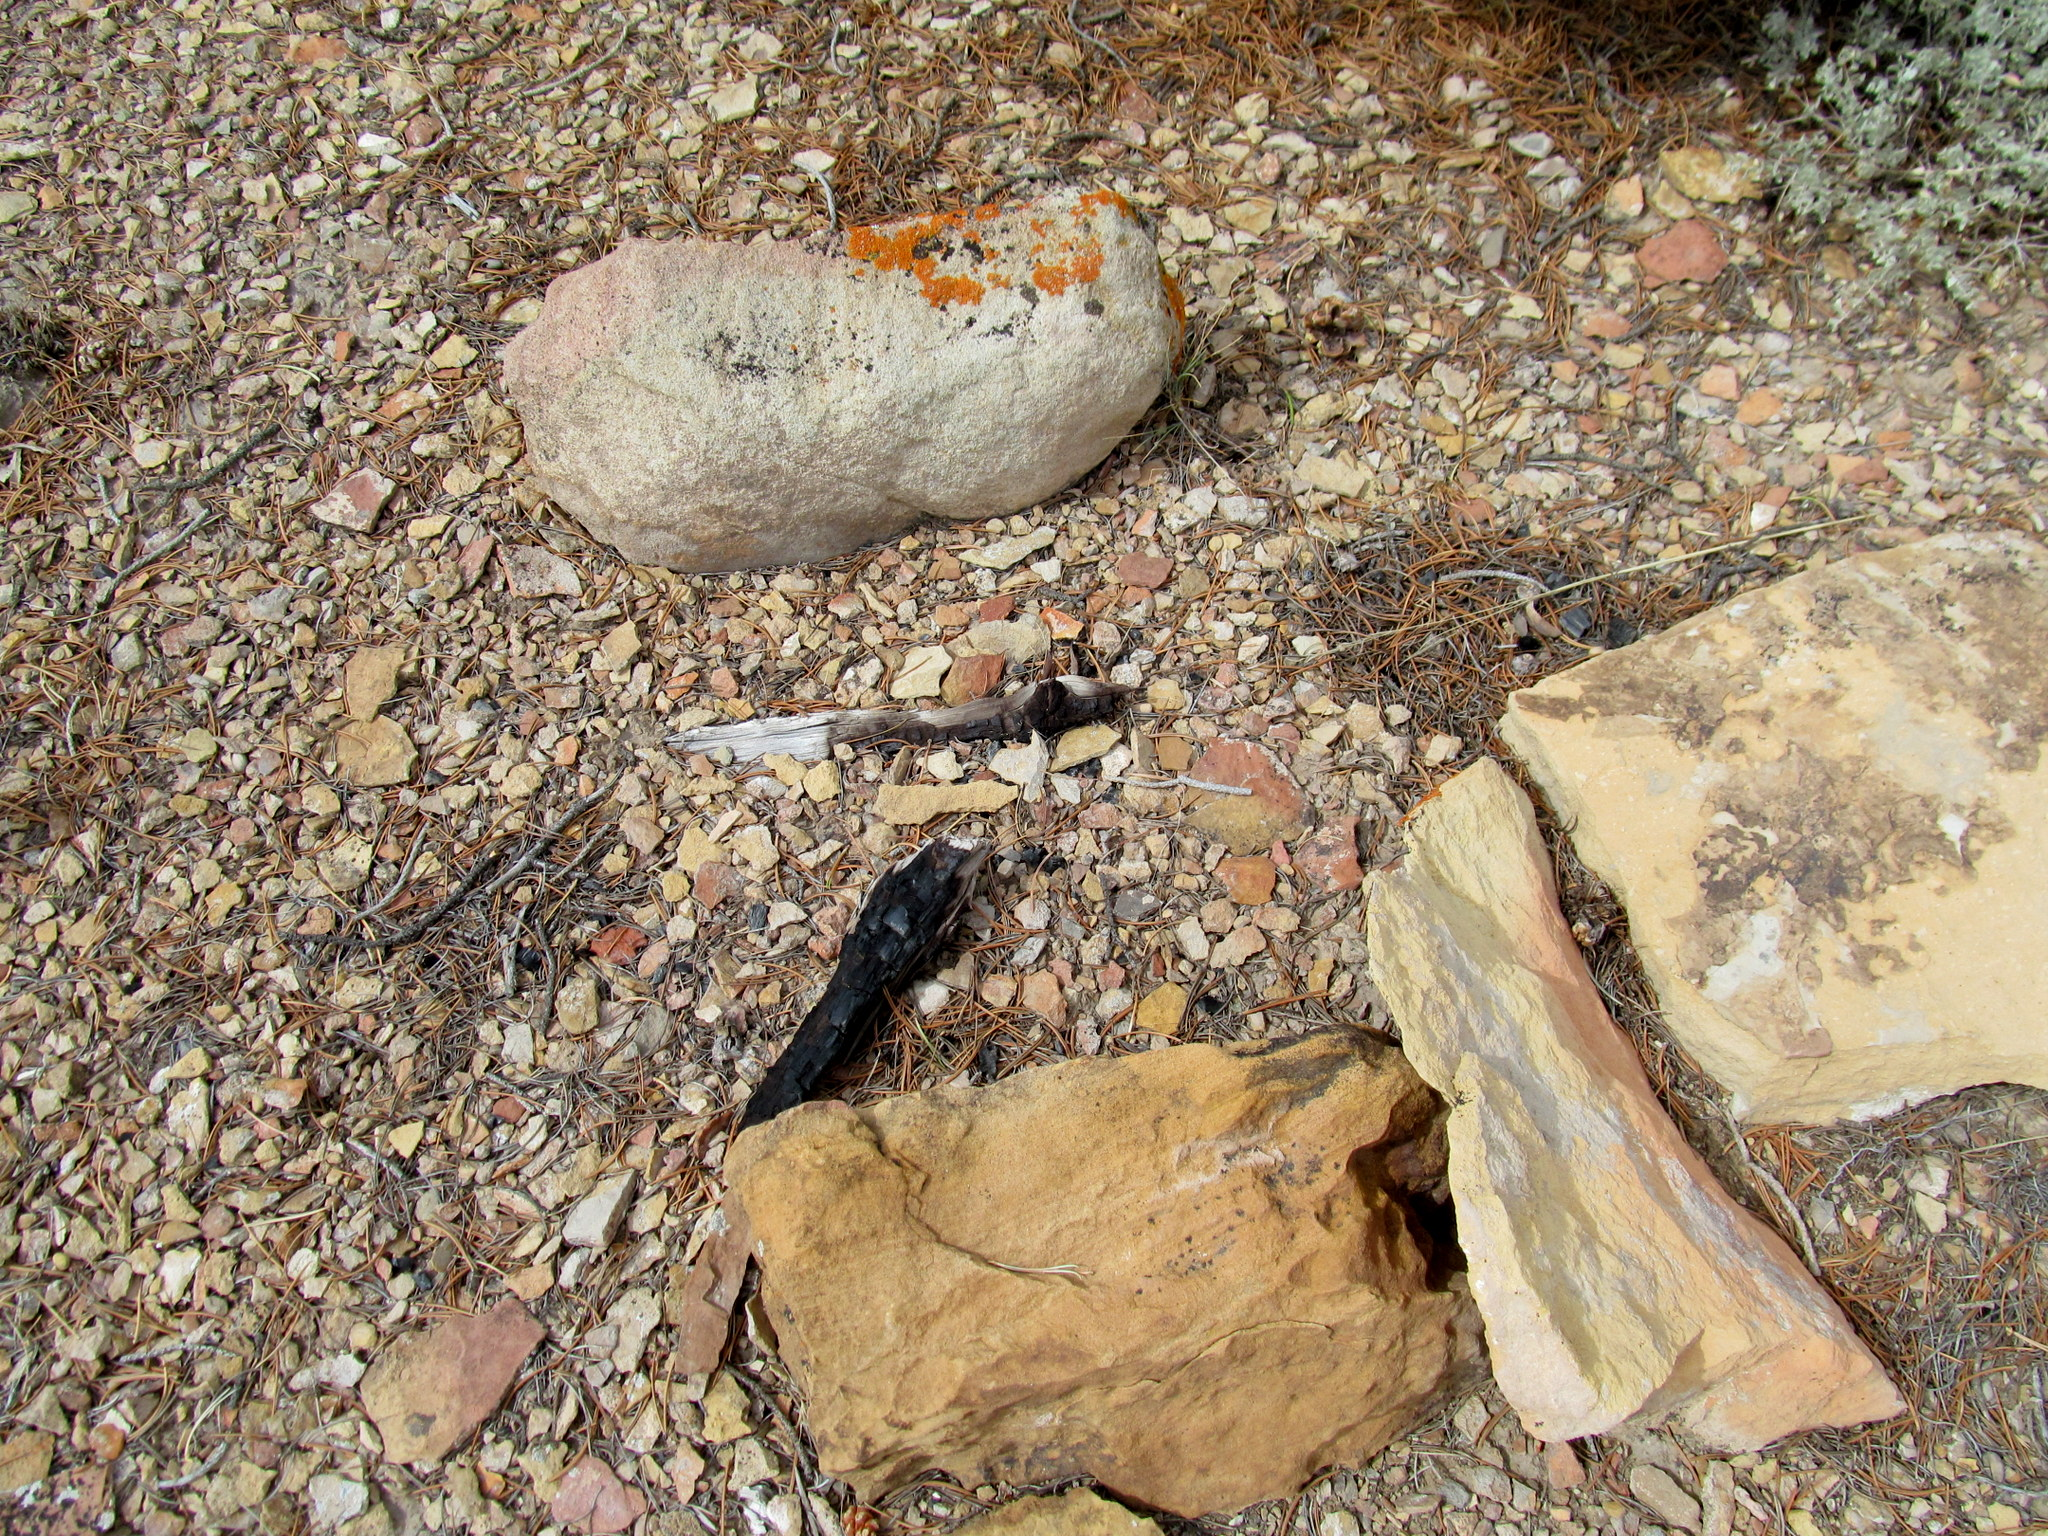 Photo: Fire-reddened rocks and burned wood